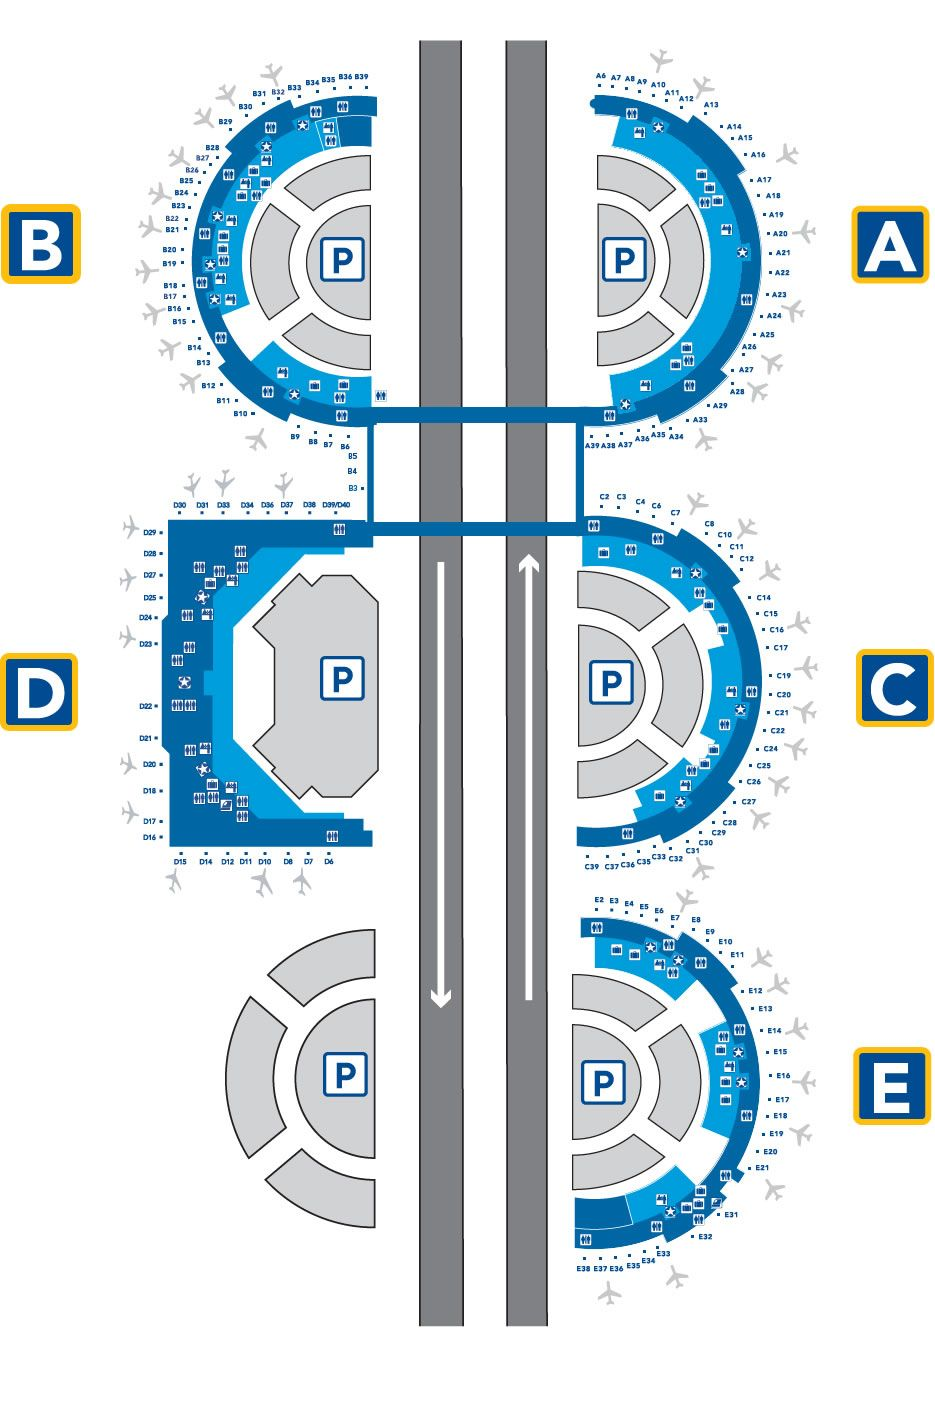 DFW Airport Terminal Layout. One of the easiest airport to